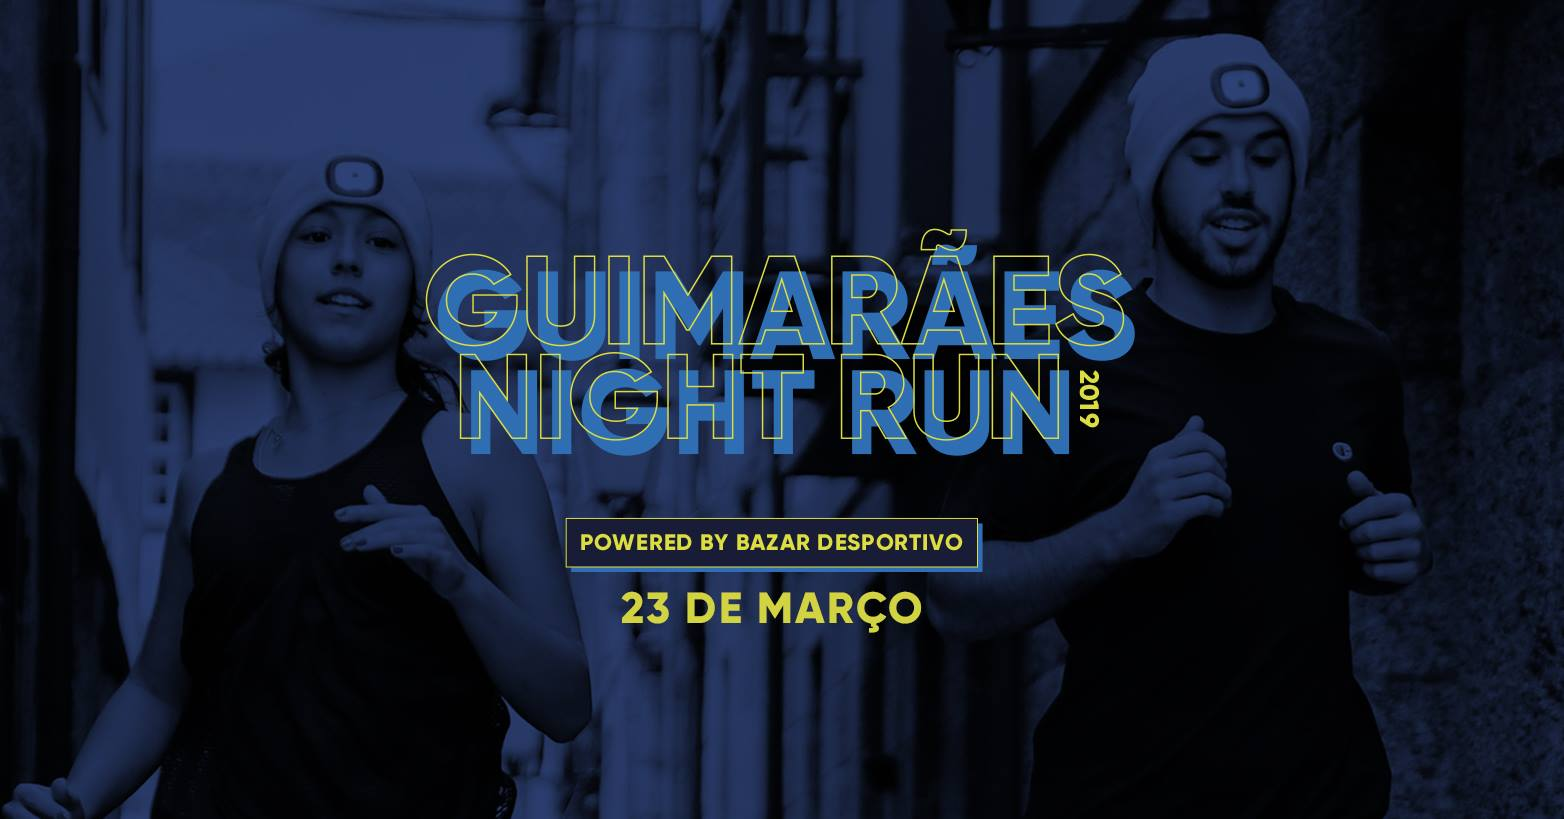 Guimarães Night Run